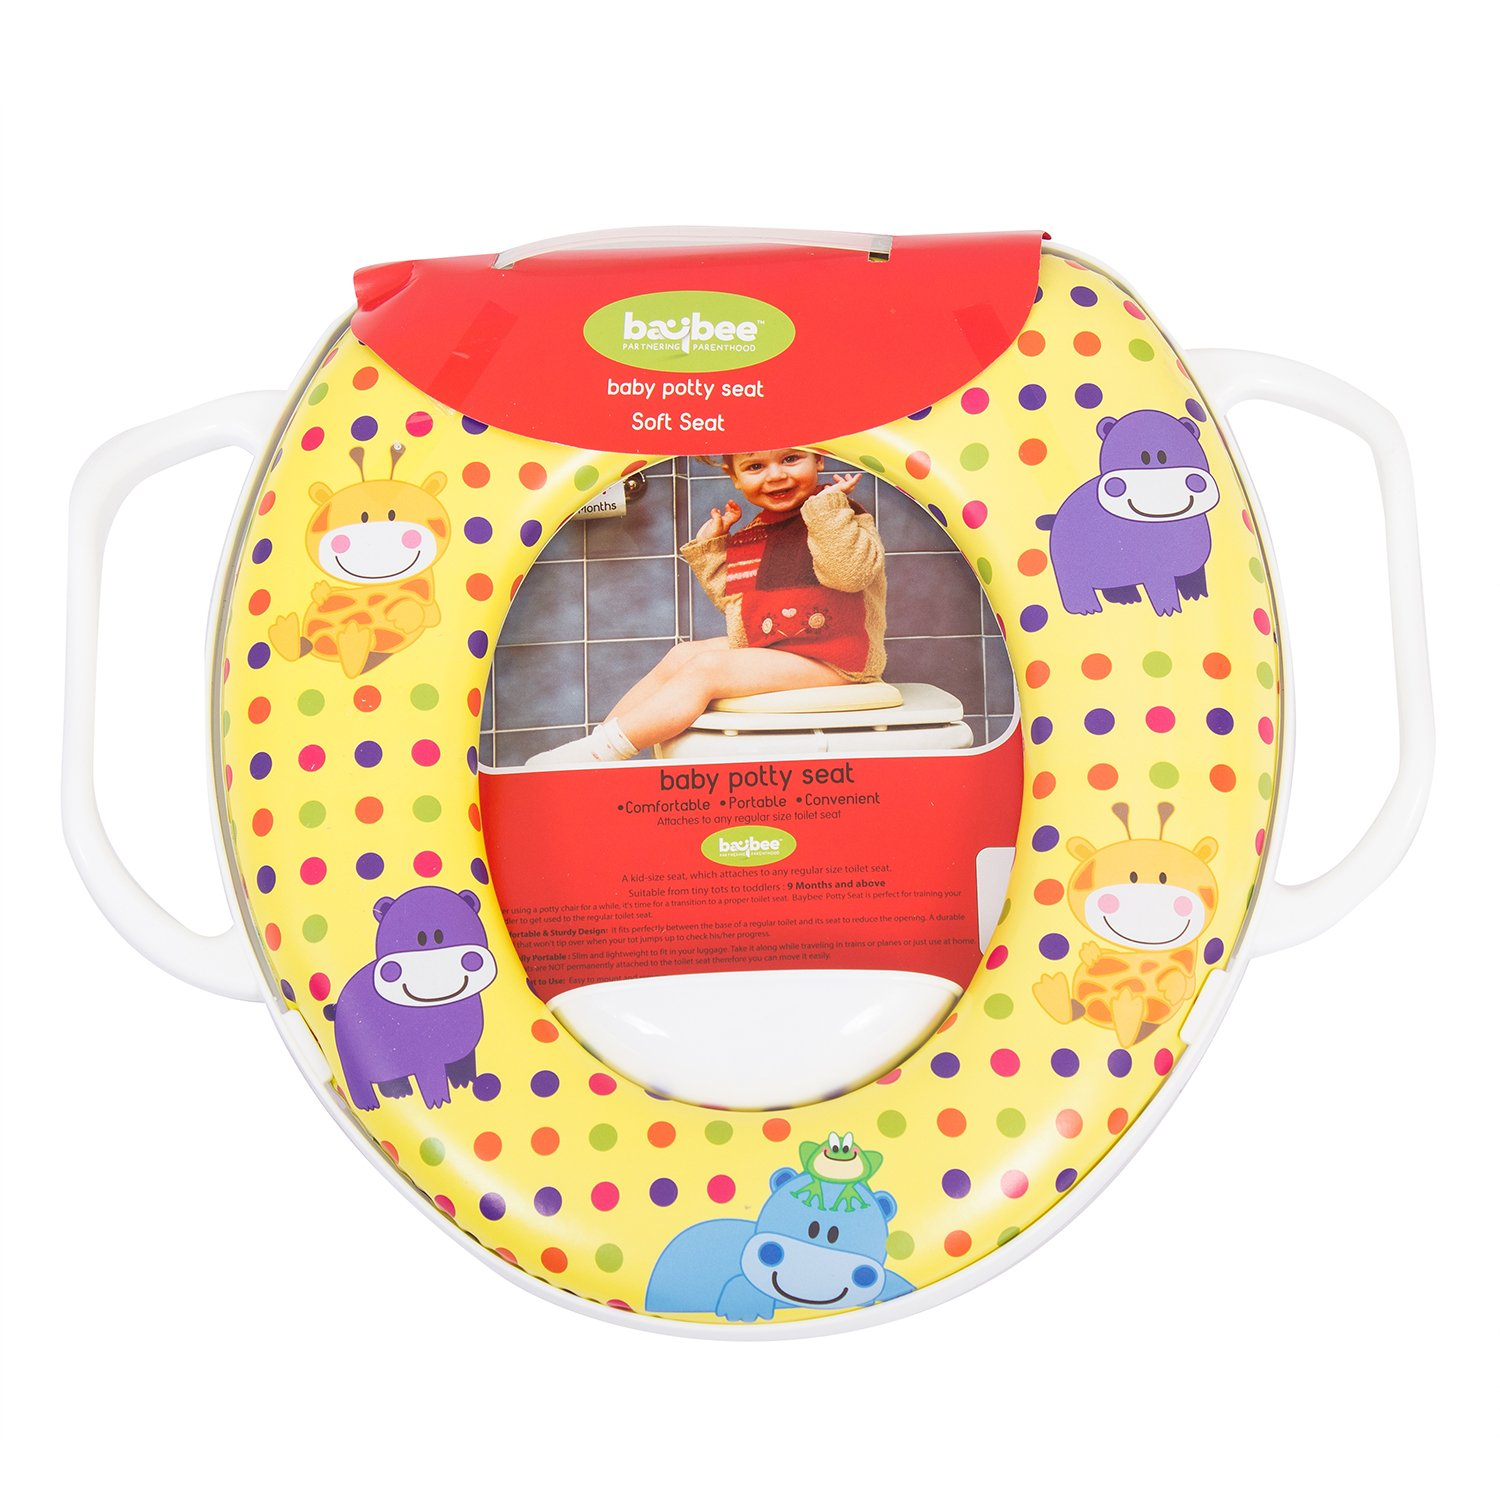 Baybee Portable Potty Training Seat | Toddler Toilet Training Soft Potty Seat Ring | Fits Round and Oval Toilets for Boys and Girls - Yellow